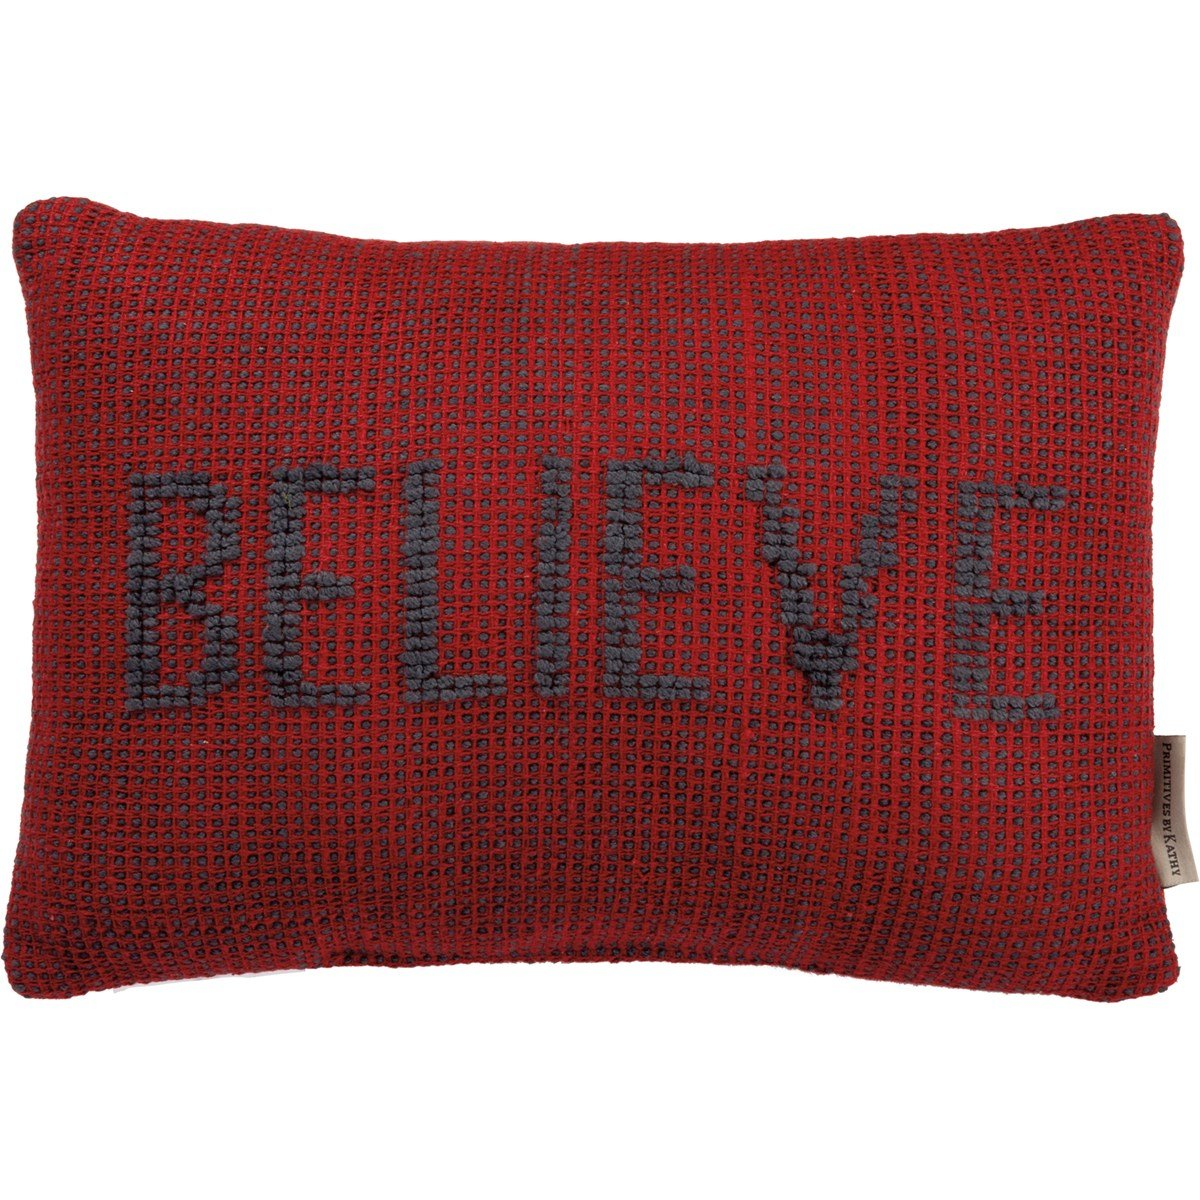 "Pillow - Believe - 15"" x 10"" - Cotton, Canvas"